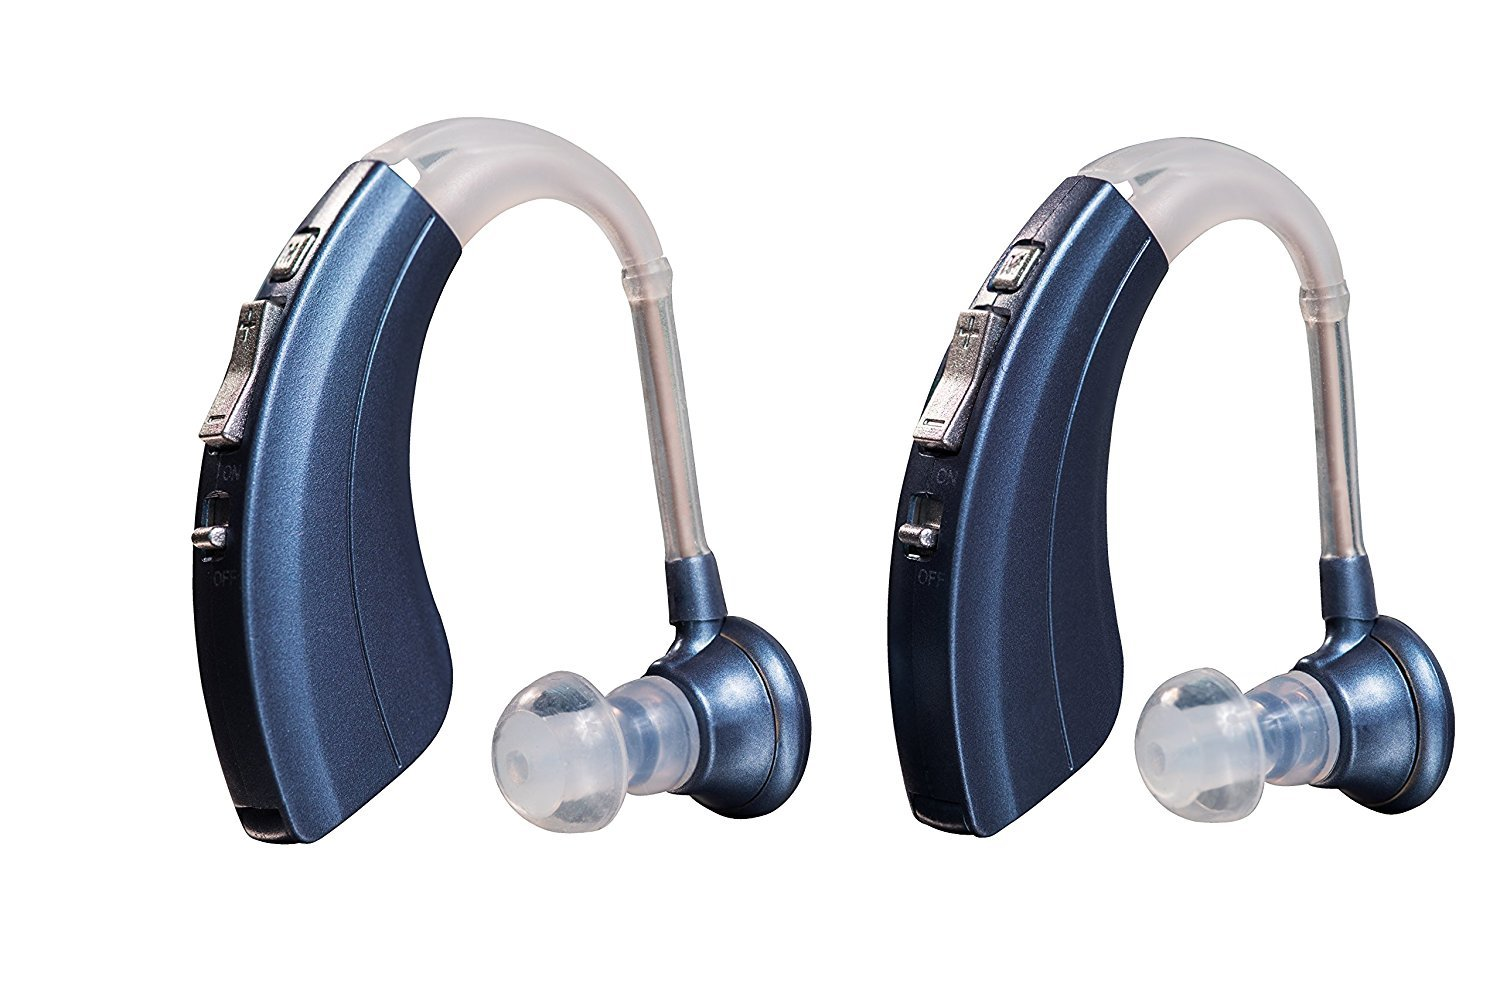 Double Pack Blue Premium Quality Hearing Amplifier, Comfortable and Easy to Operate, B-220-HA-BD by Britzgo